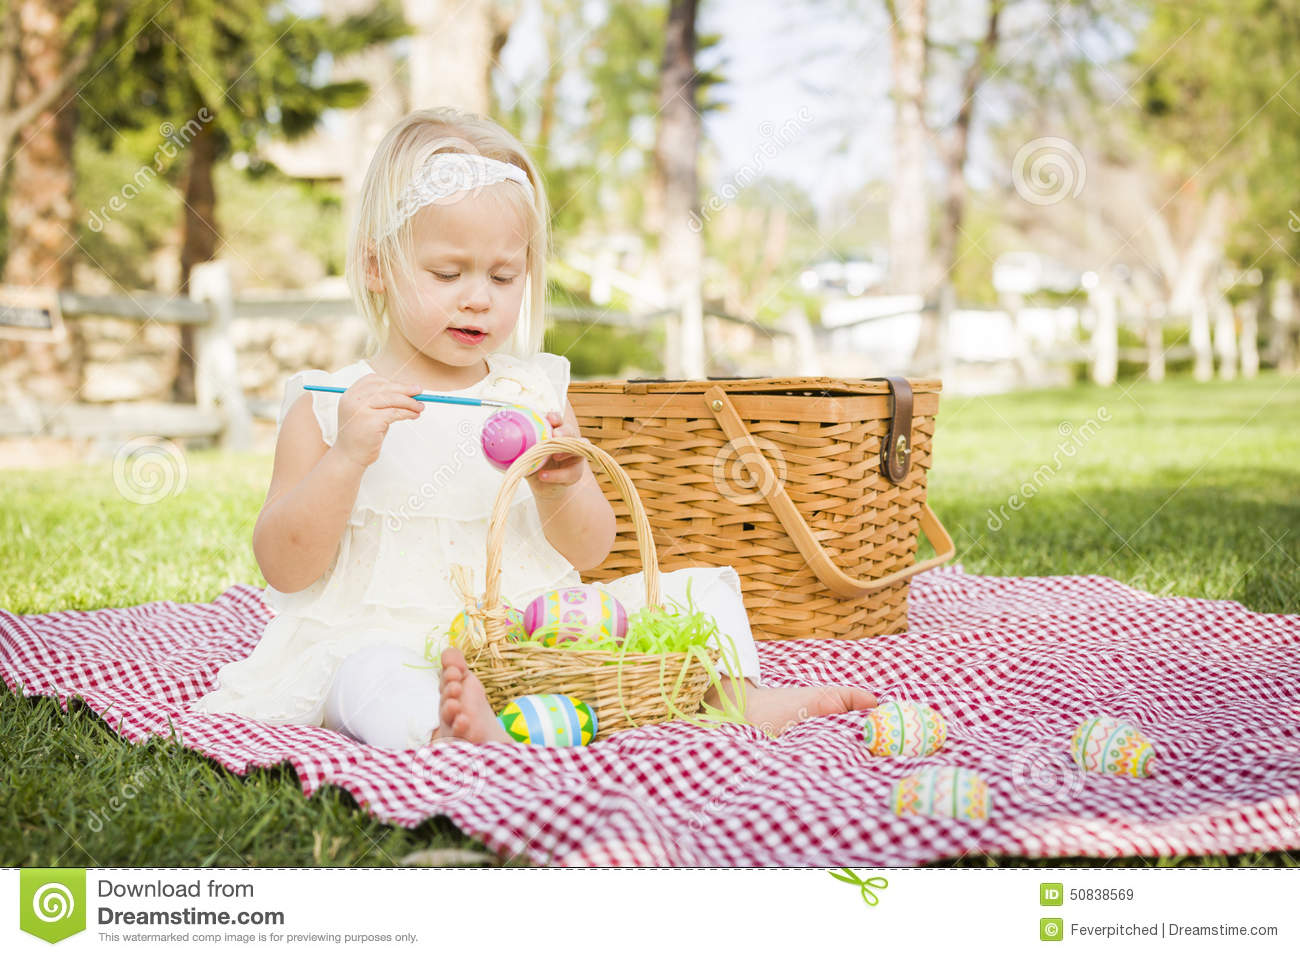 Sweet baby girl coloring easter eggs on picnic blanket for Picnic blanket coloring page